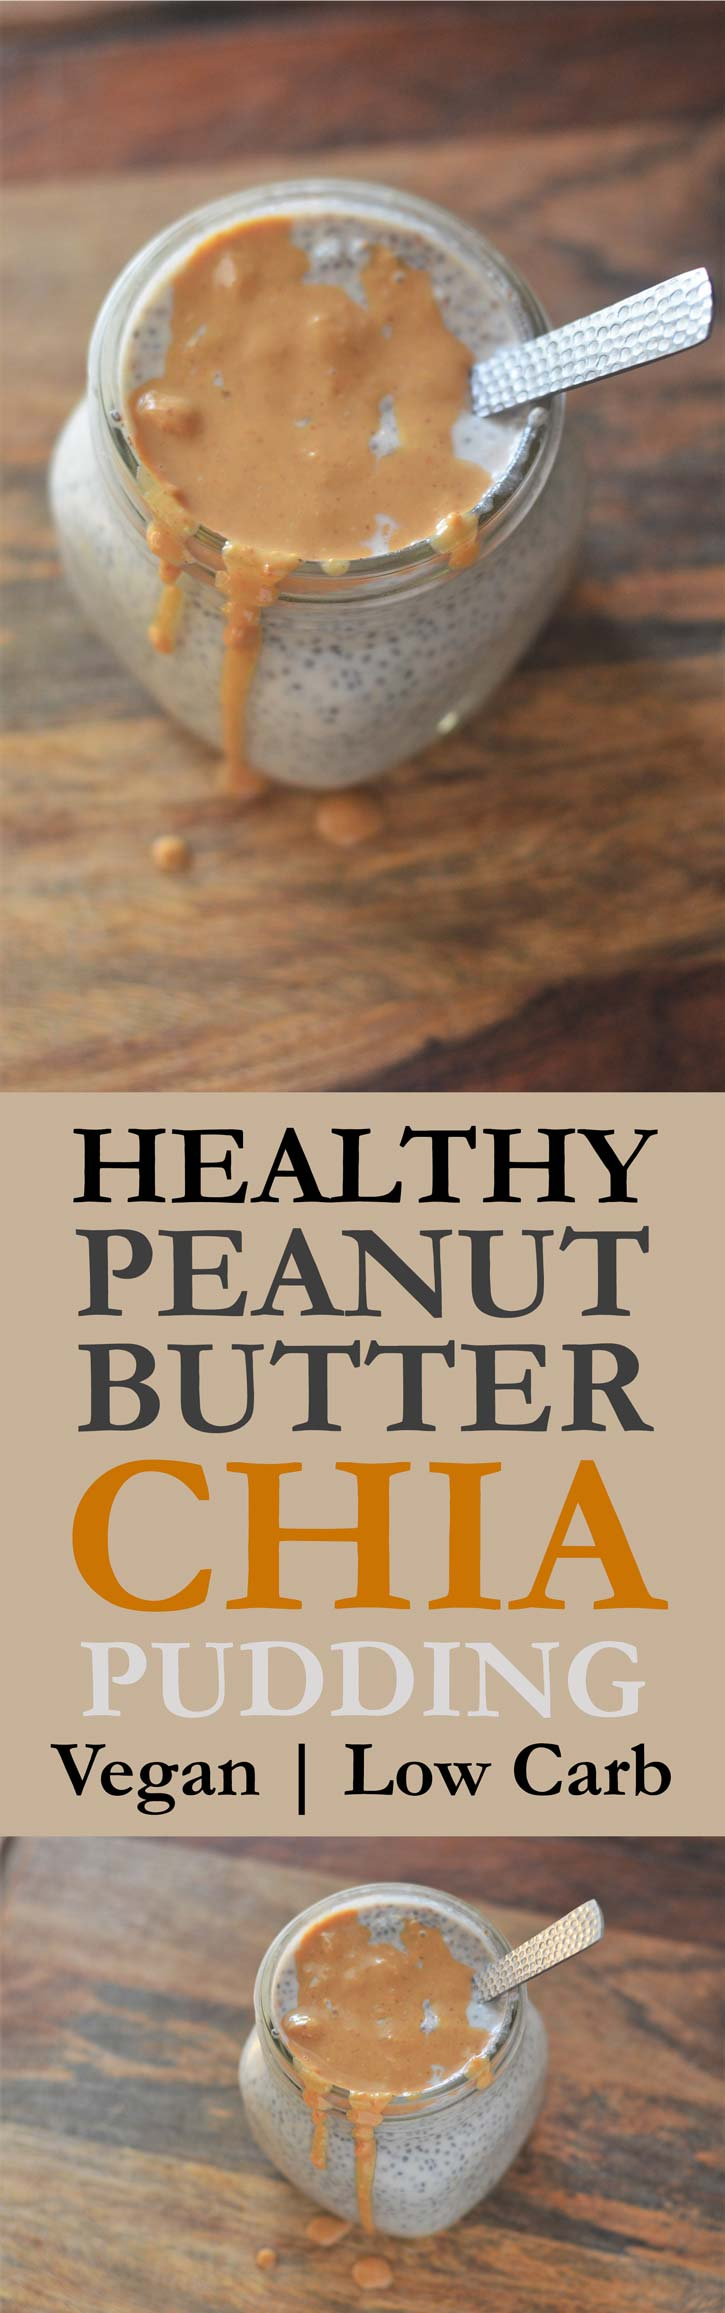 peanut butter chia pudding gluten free low carb vegan